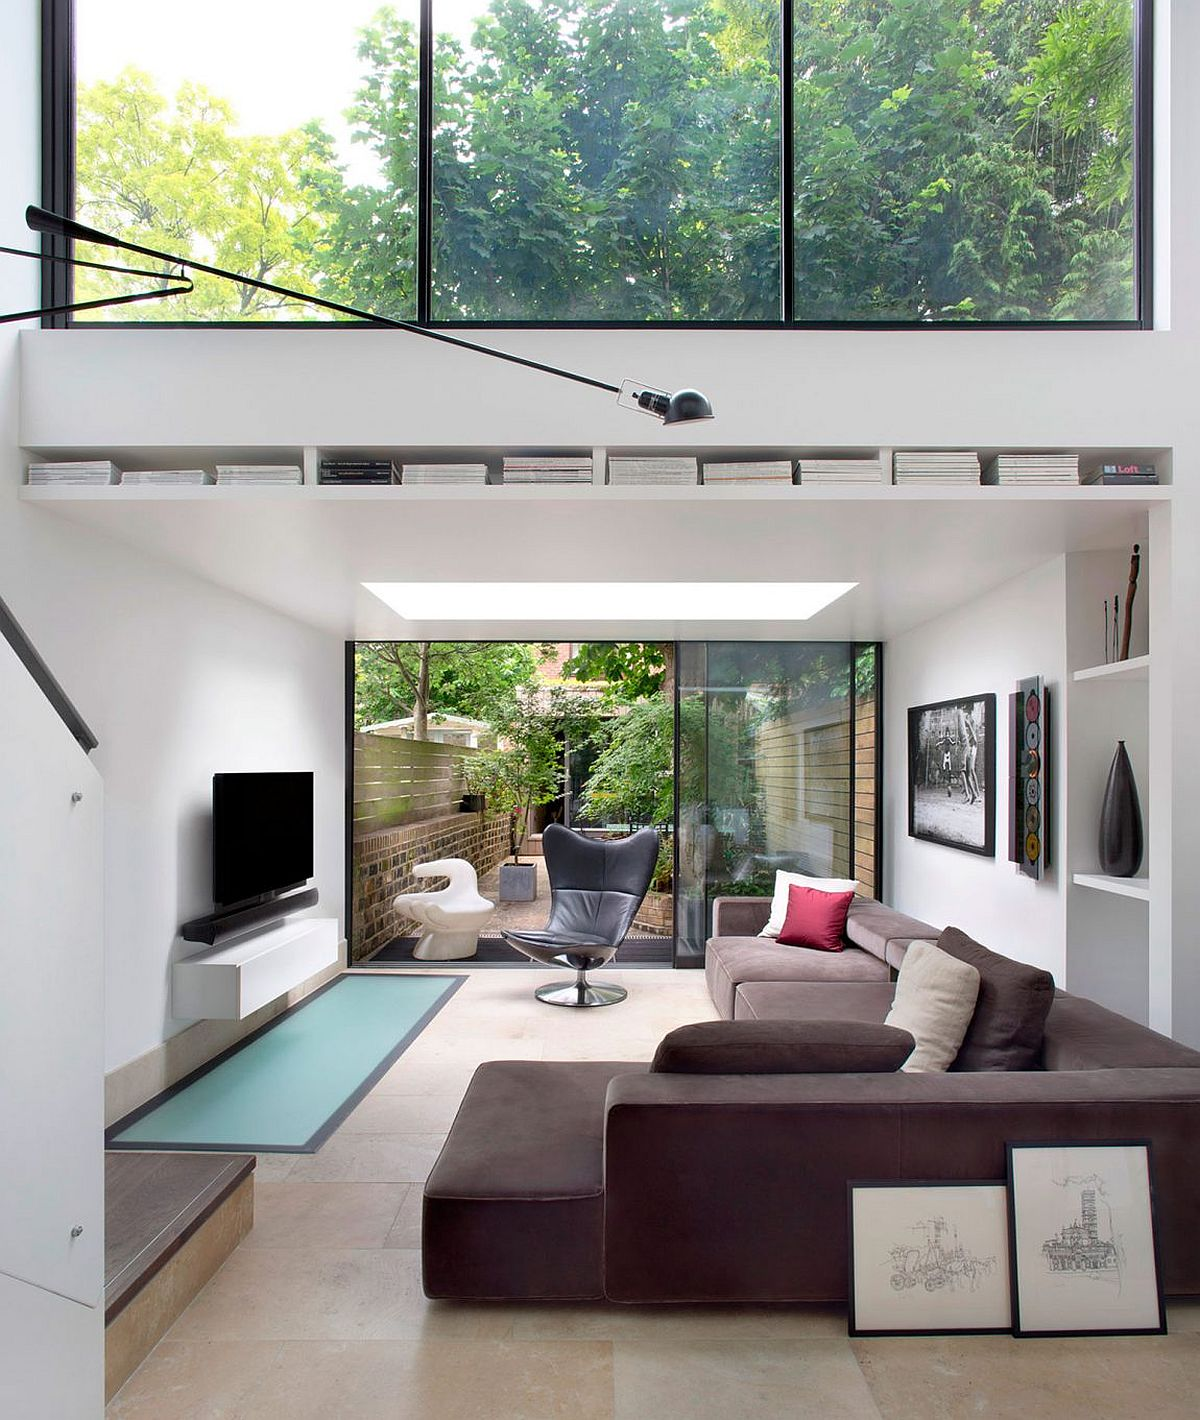 Sliding glass doors connect the living room with the rear yard